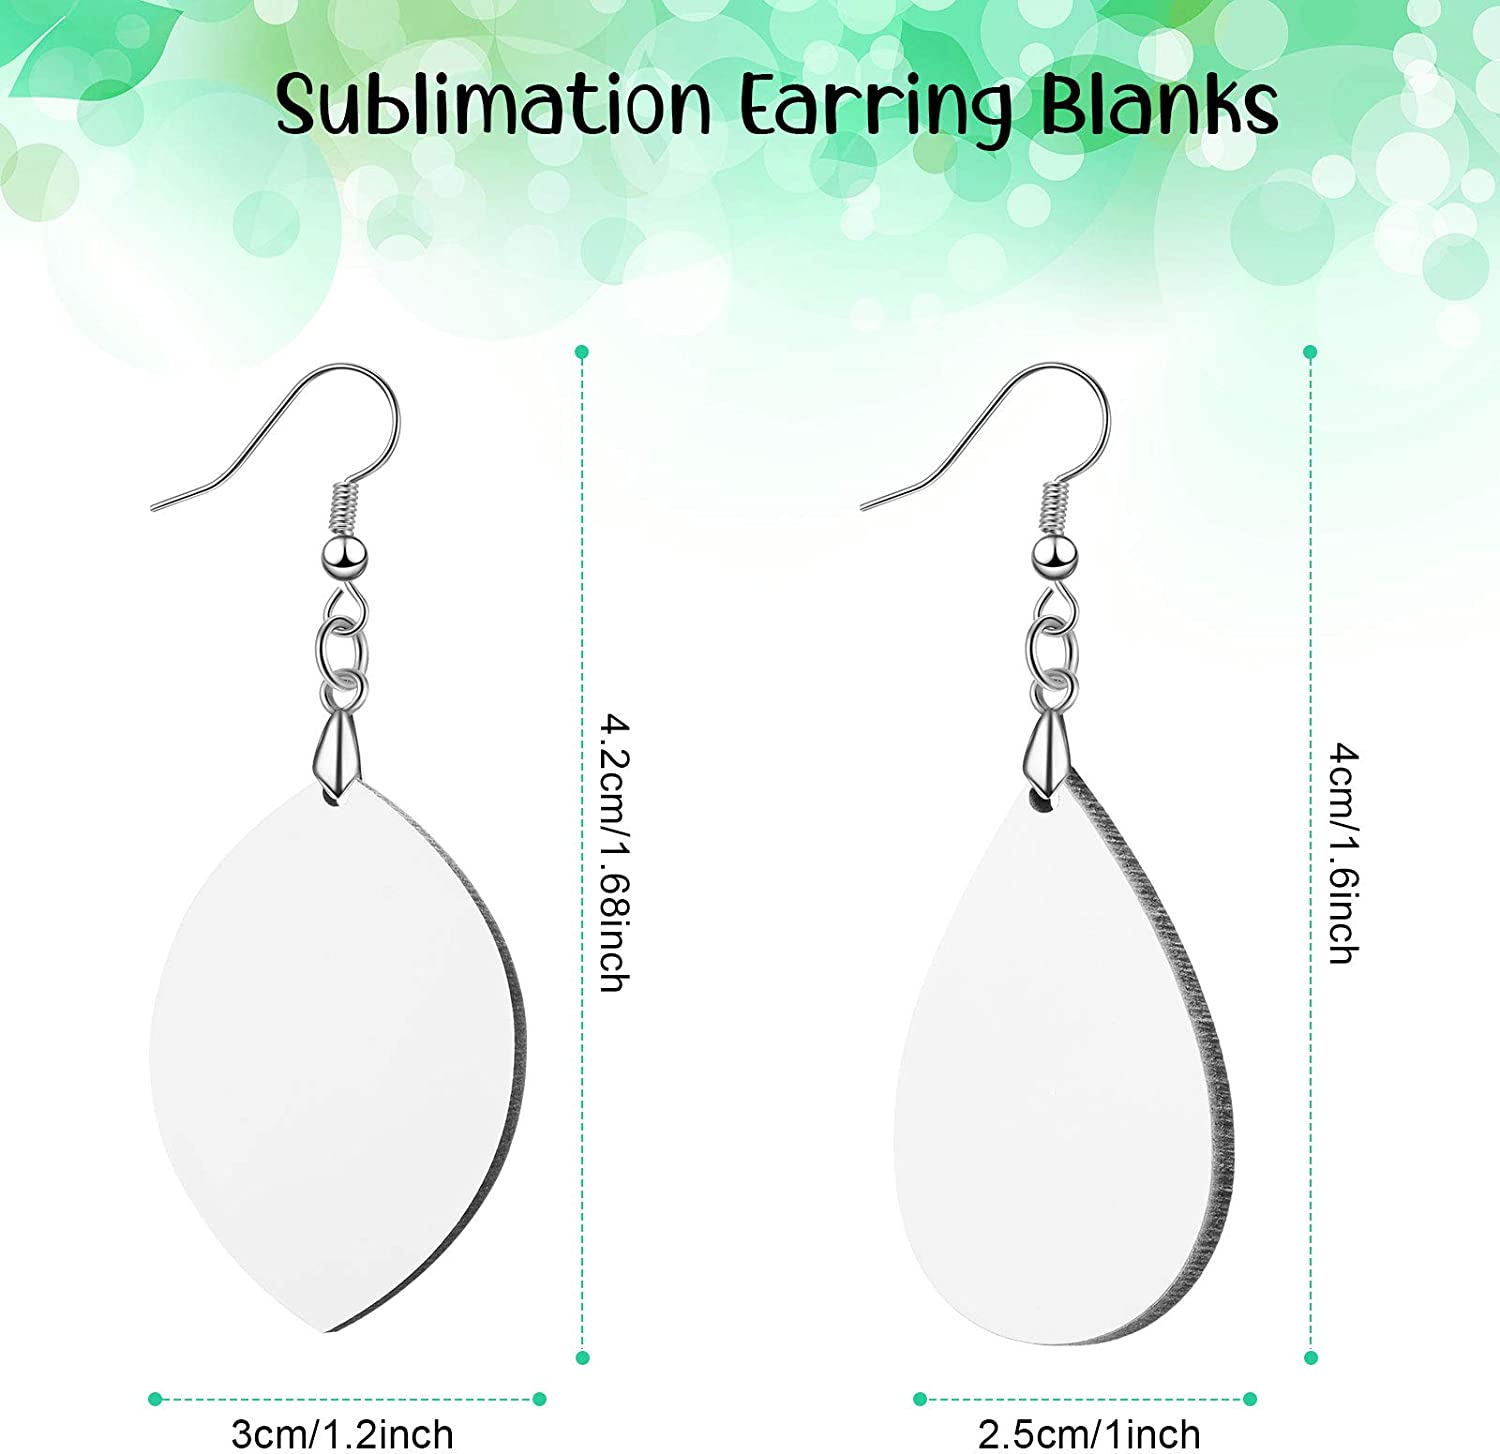 12 Pairs Sublimation Earring Blank Heat Transfer Wire Hooks Earrings Unfinished Wood Teardrop Earring Pendant with Earring Hooks for Jewelry Making DIY Craft